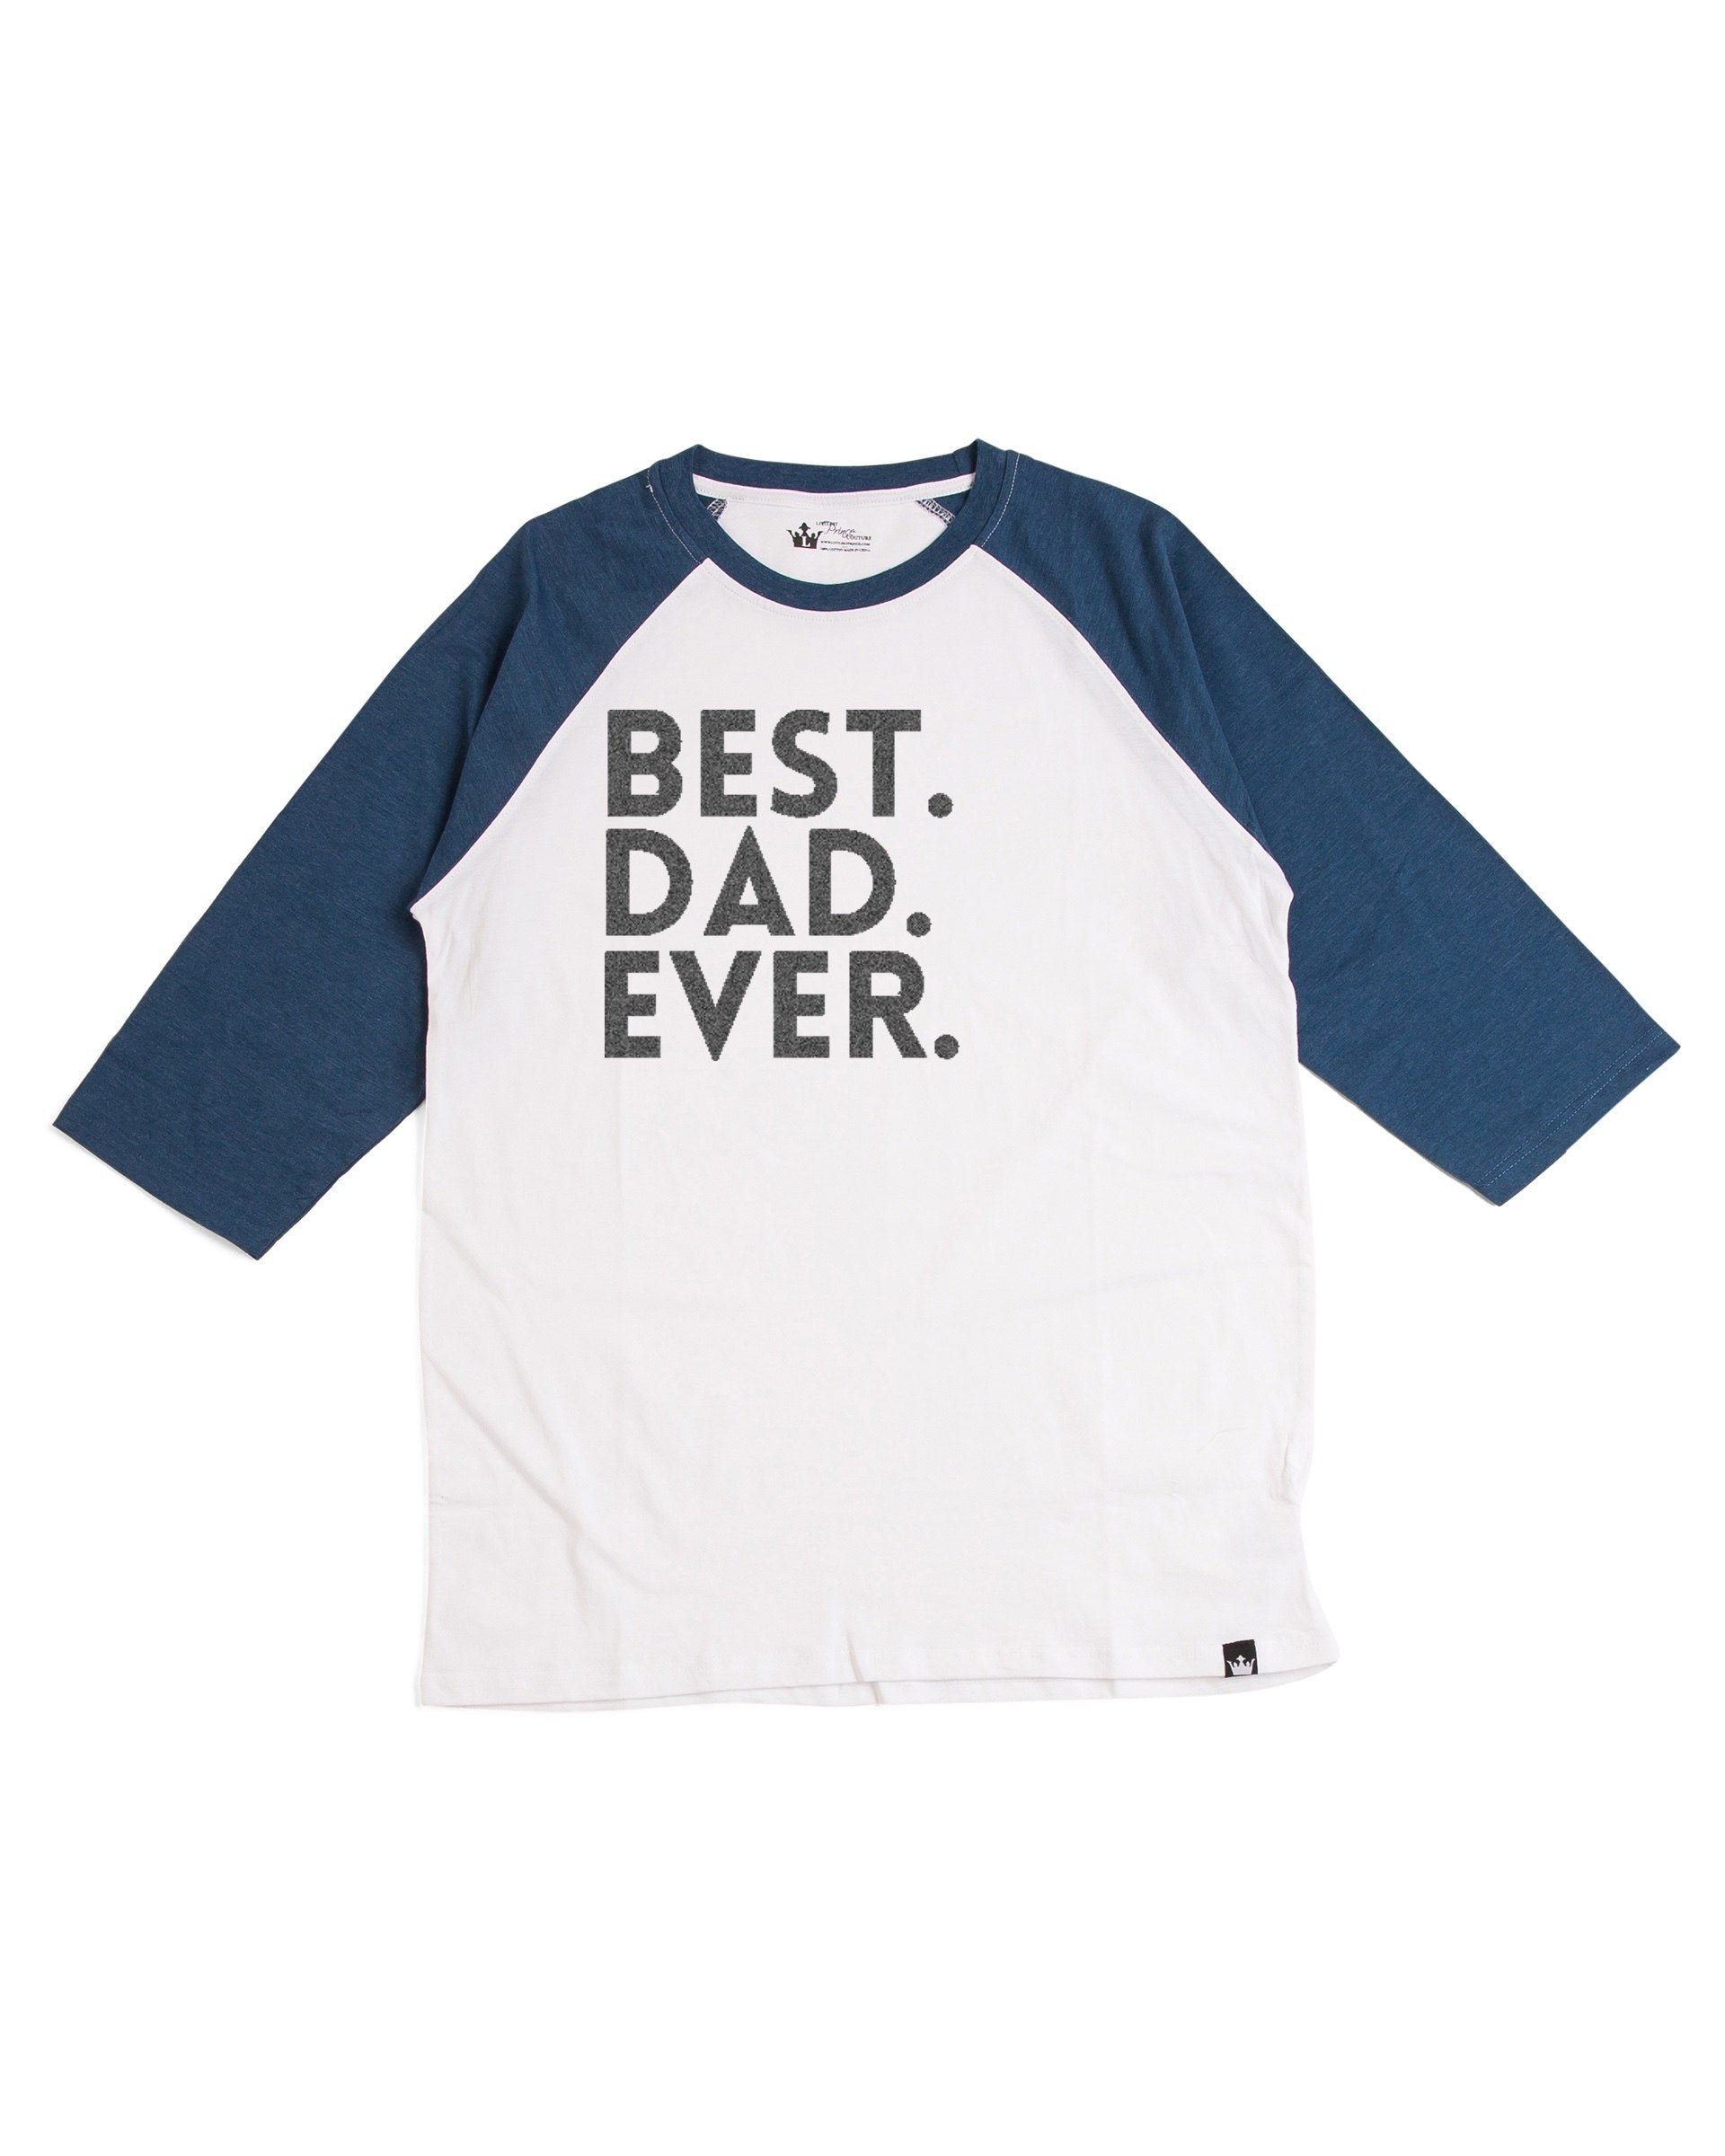 fdm-bde-nhsr-best-dad-ever-navy-white-half-sleeve-raglan-mens-shirt.jpg